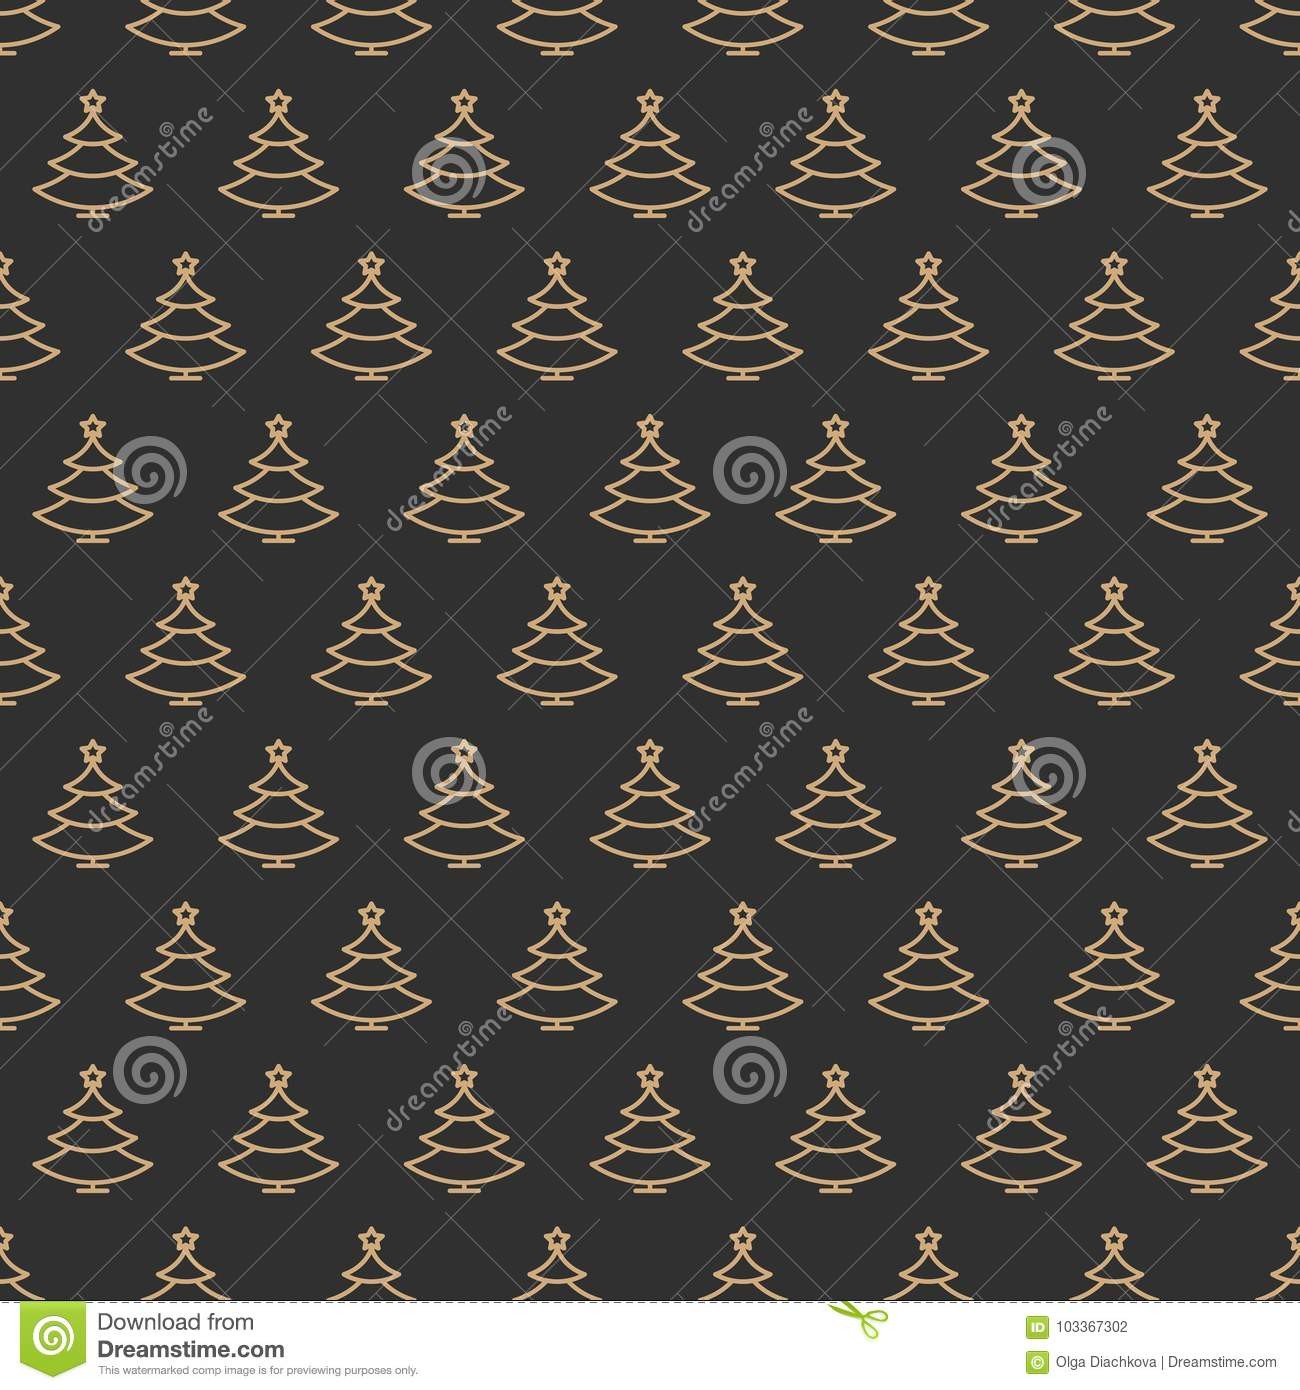 Christmas tree seamless pattern gold color line style on black background